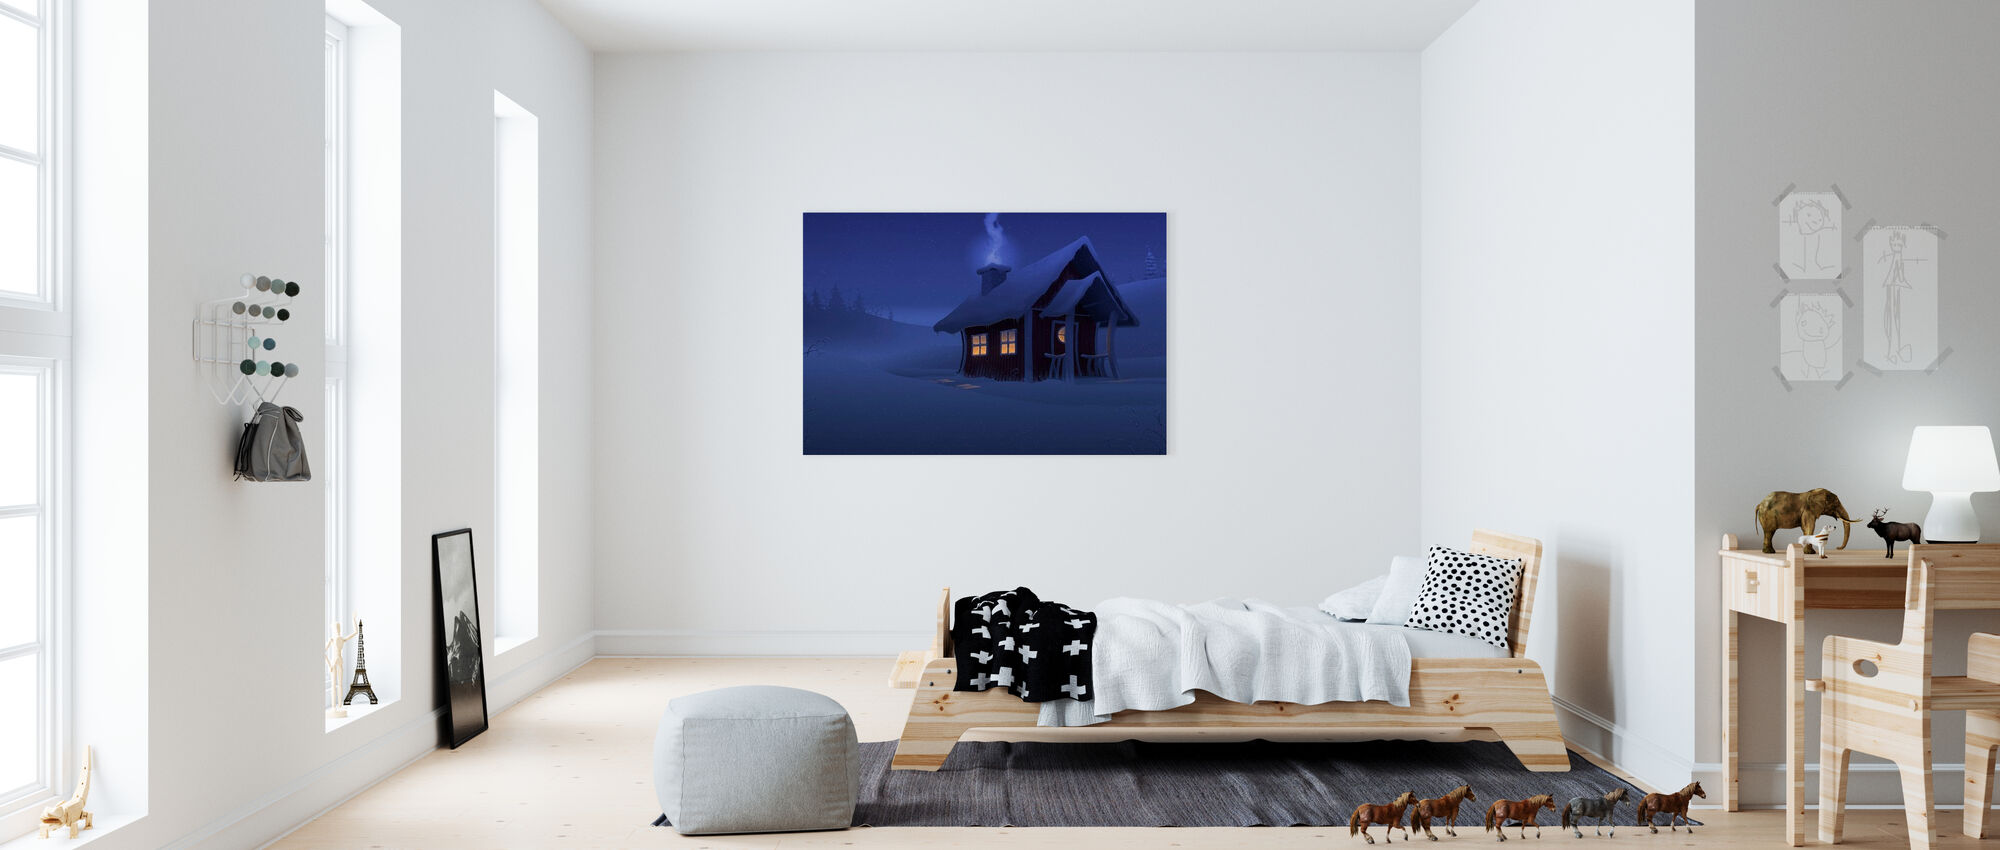 Xmas House - Canvas print - Kids Room